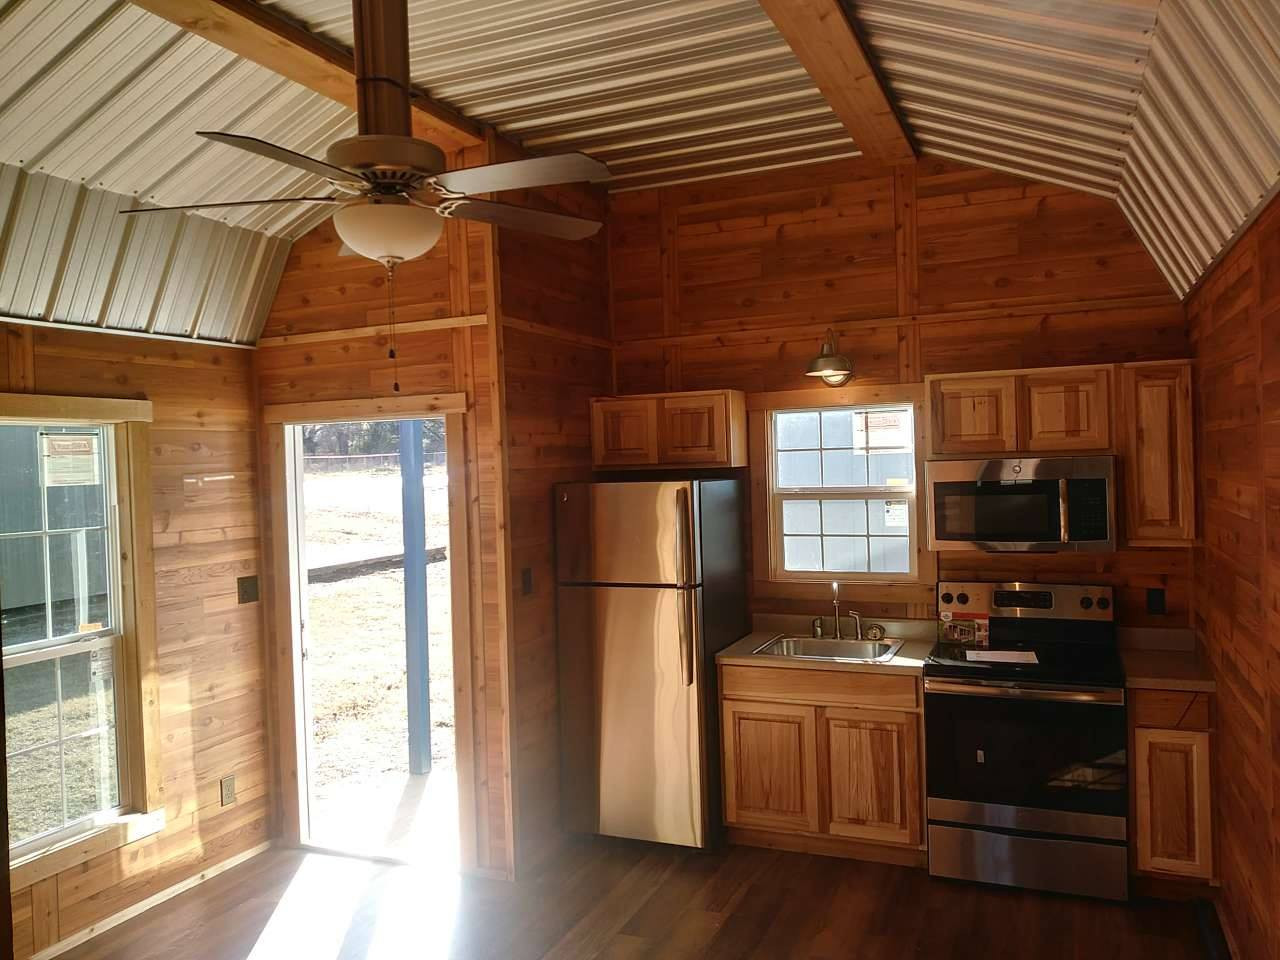 Living/kitchen from bedroom